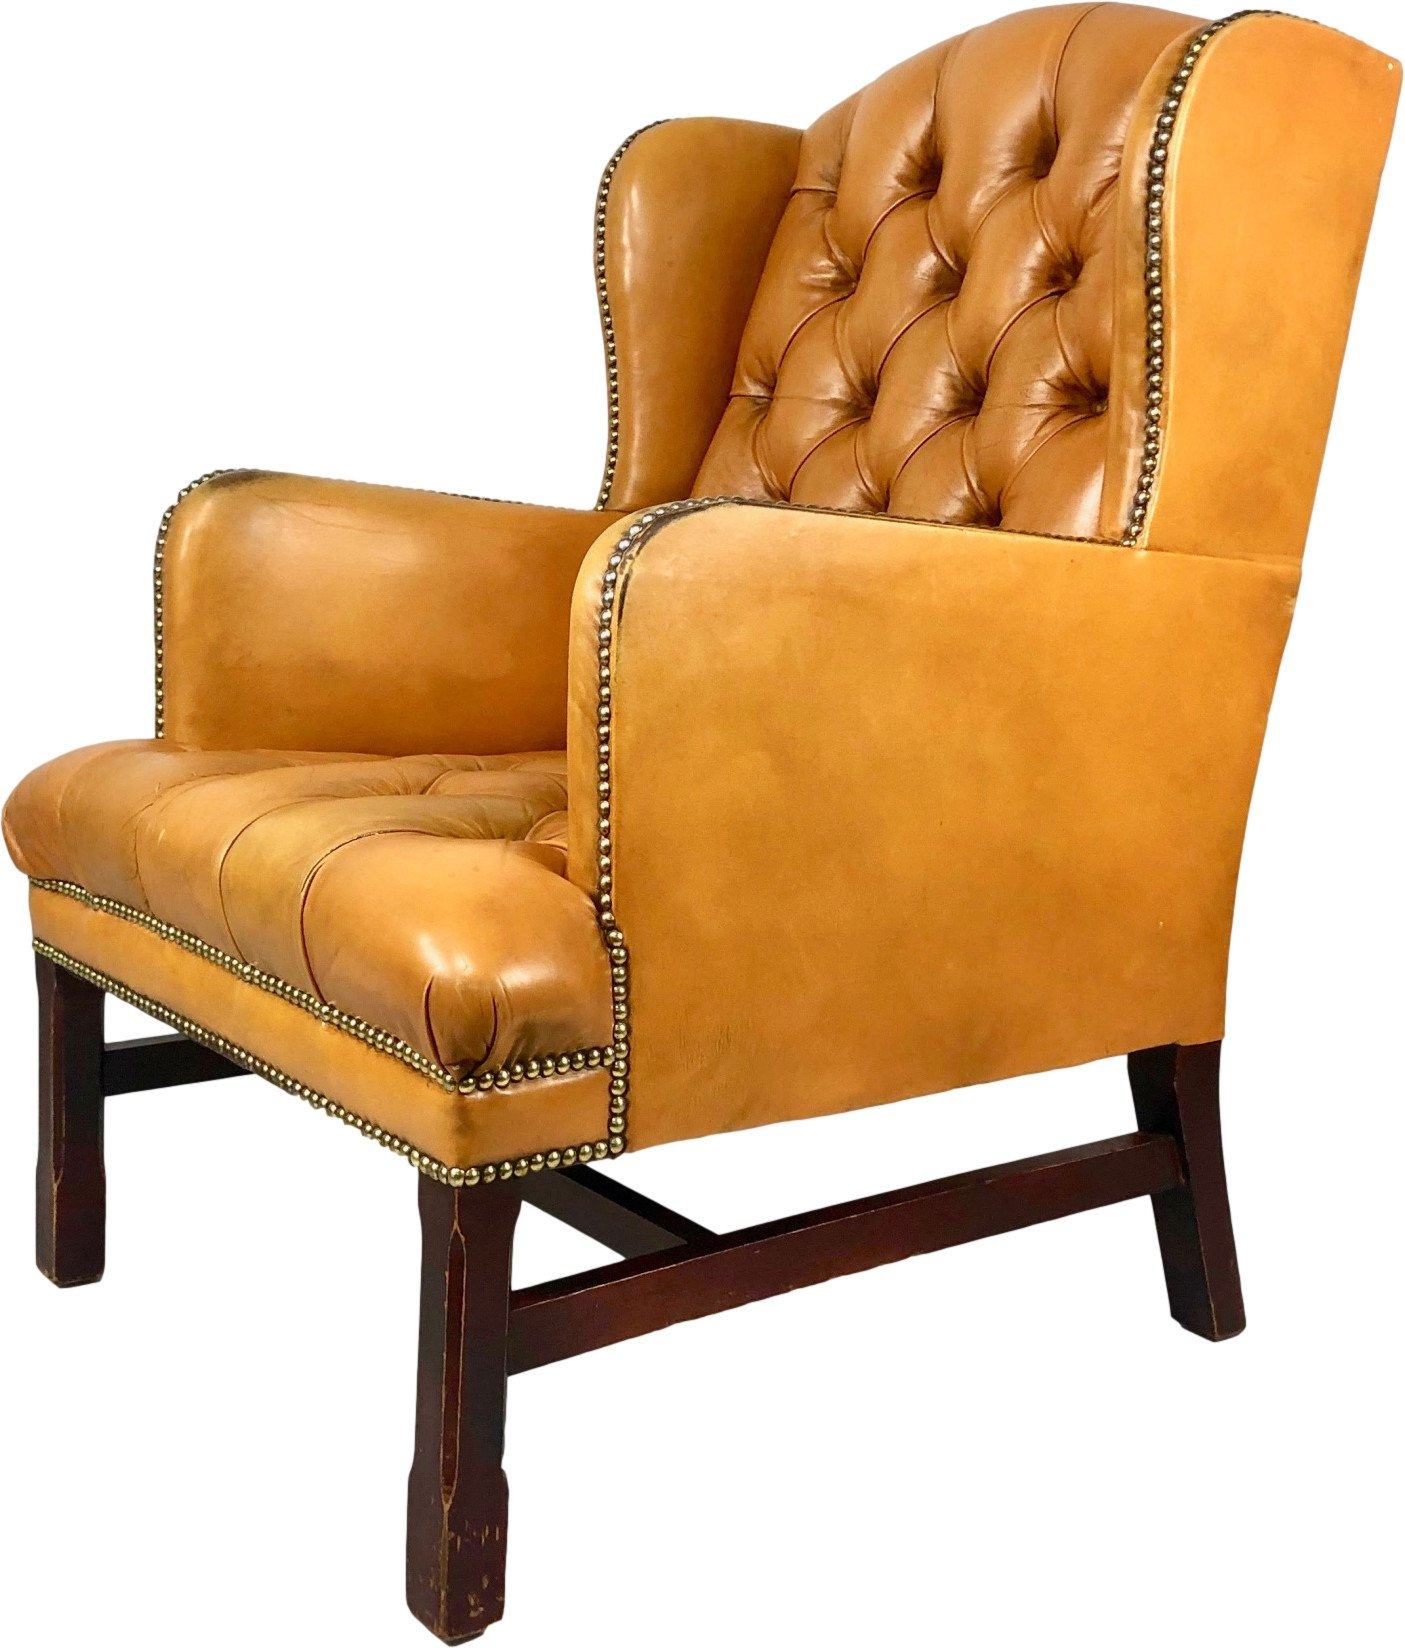 Armchair, United Kingdom, 1950s - 503814 - photo